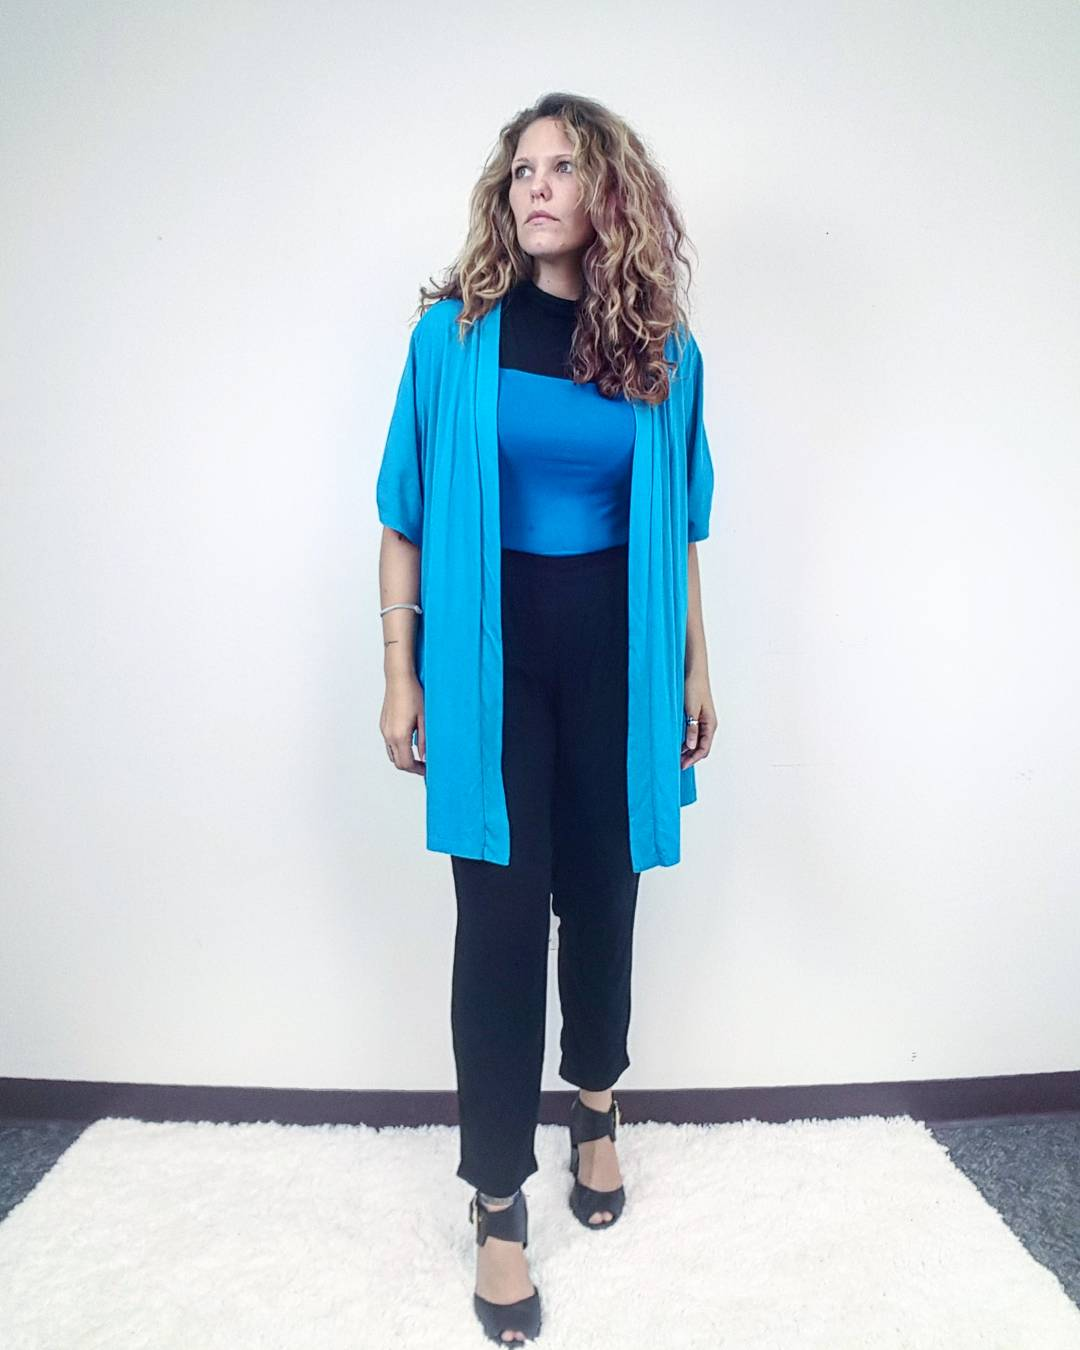 Thrift Store Cosplay Day 5 Beverly Crusher from Star Trek The Next Generation fashion blogger